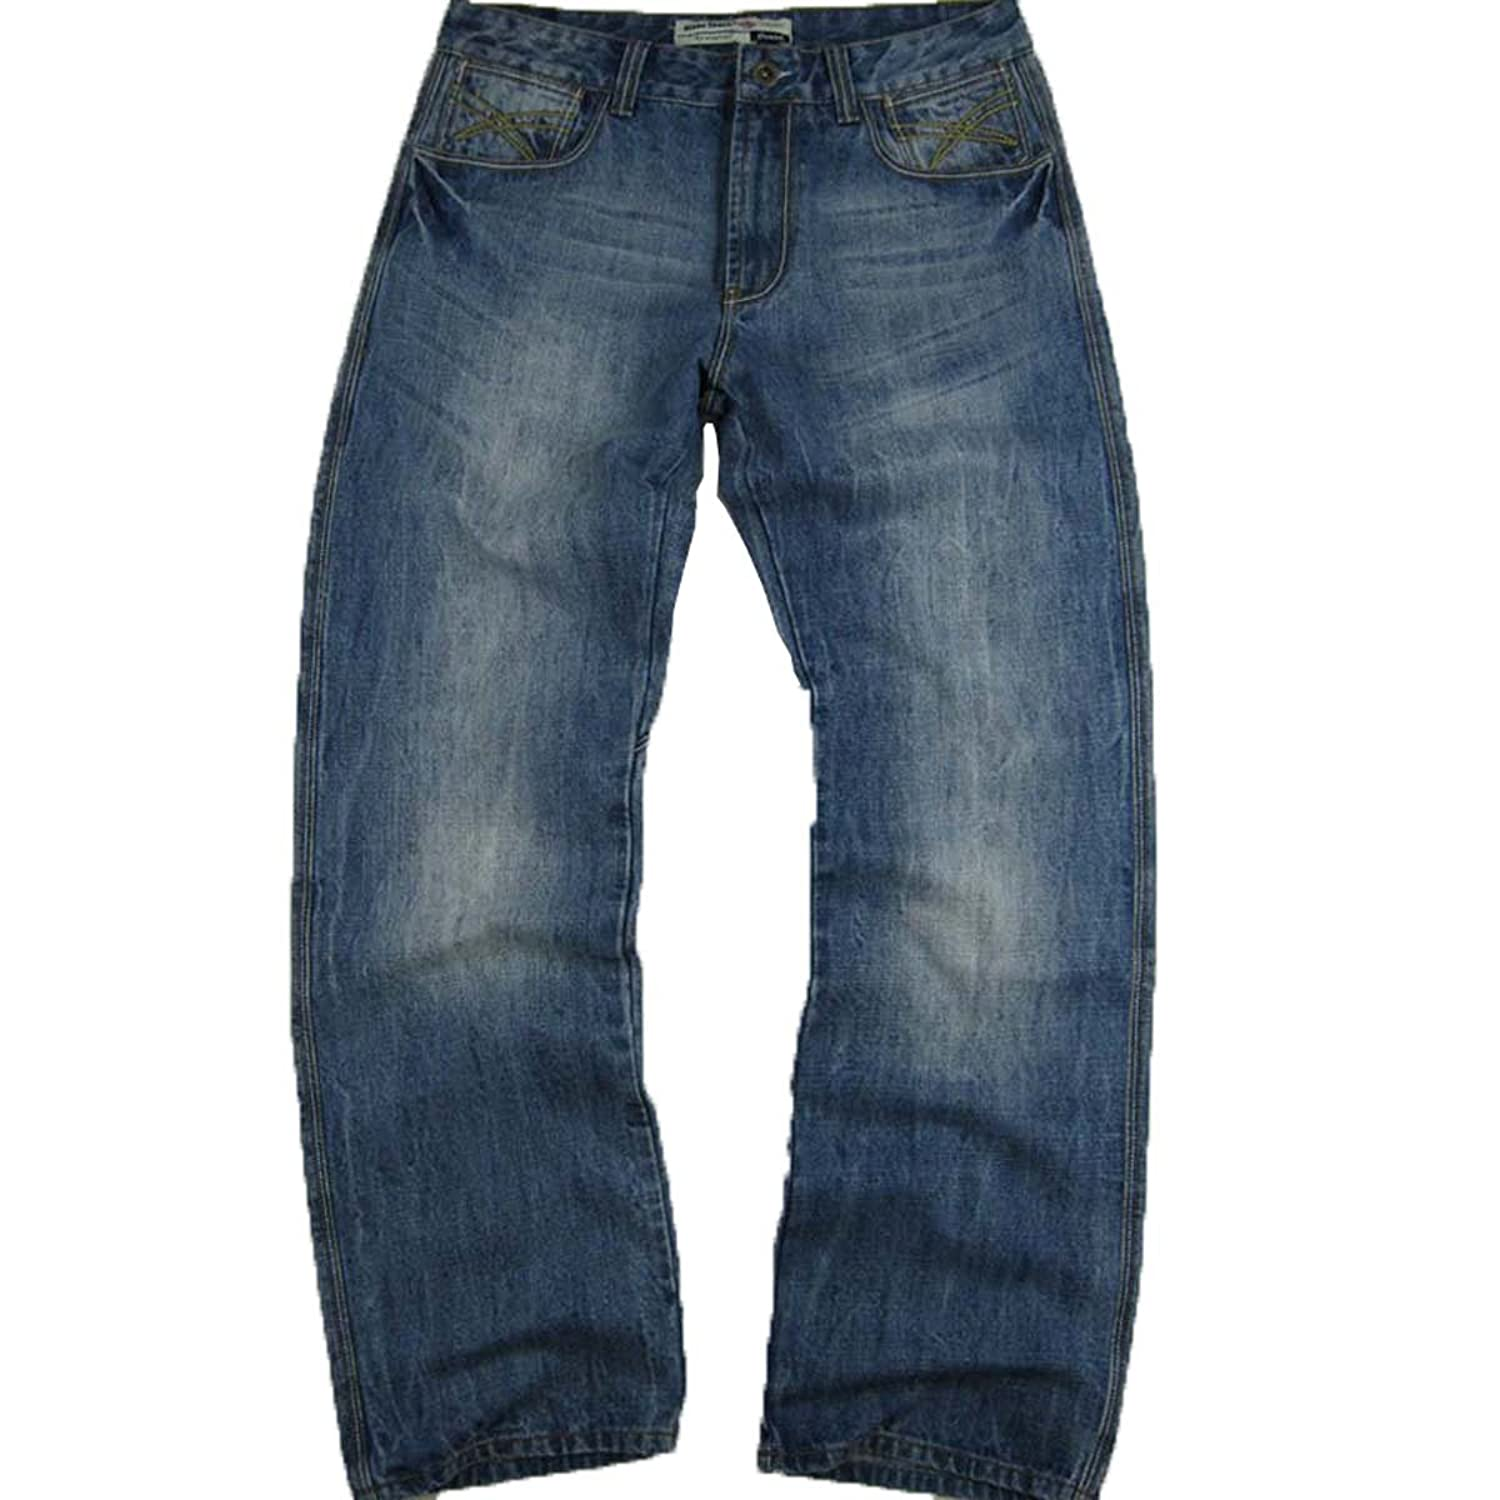 #M1402-MN016 Men's Relax Straight Leg Stylish Wash Premium Jeans Size: 32 x 34